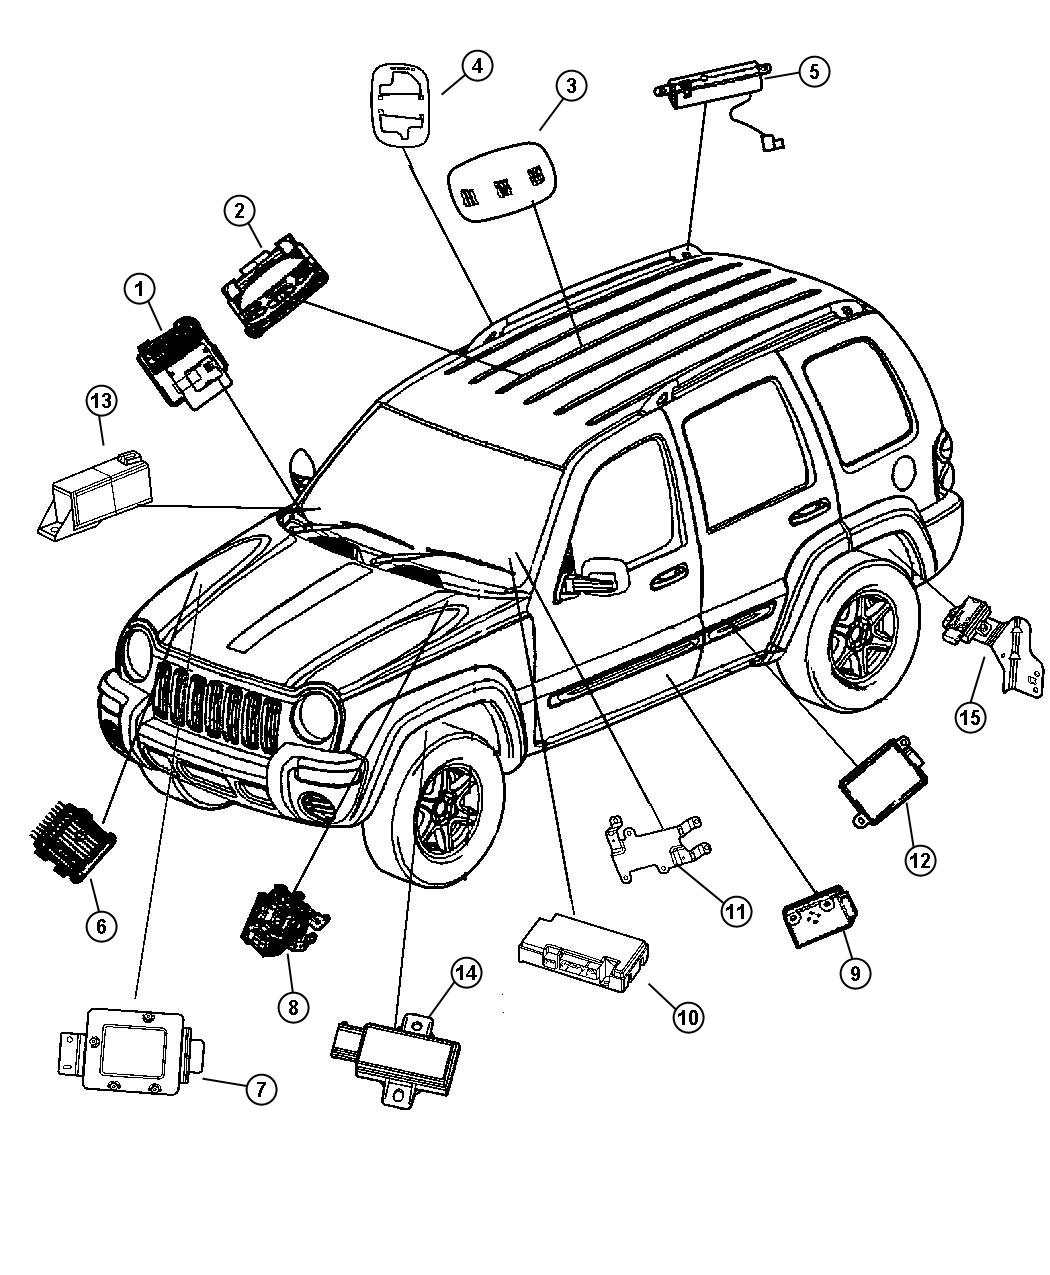 jeep liberty electrical diagram shifter  jeep  auto wiring